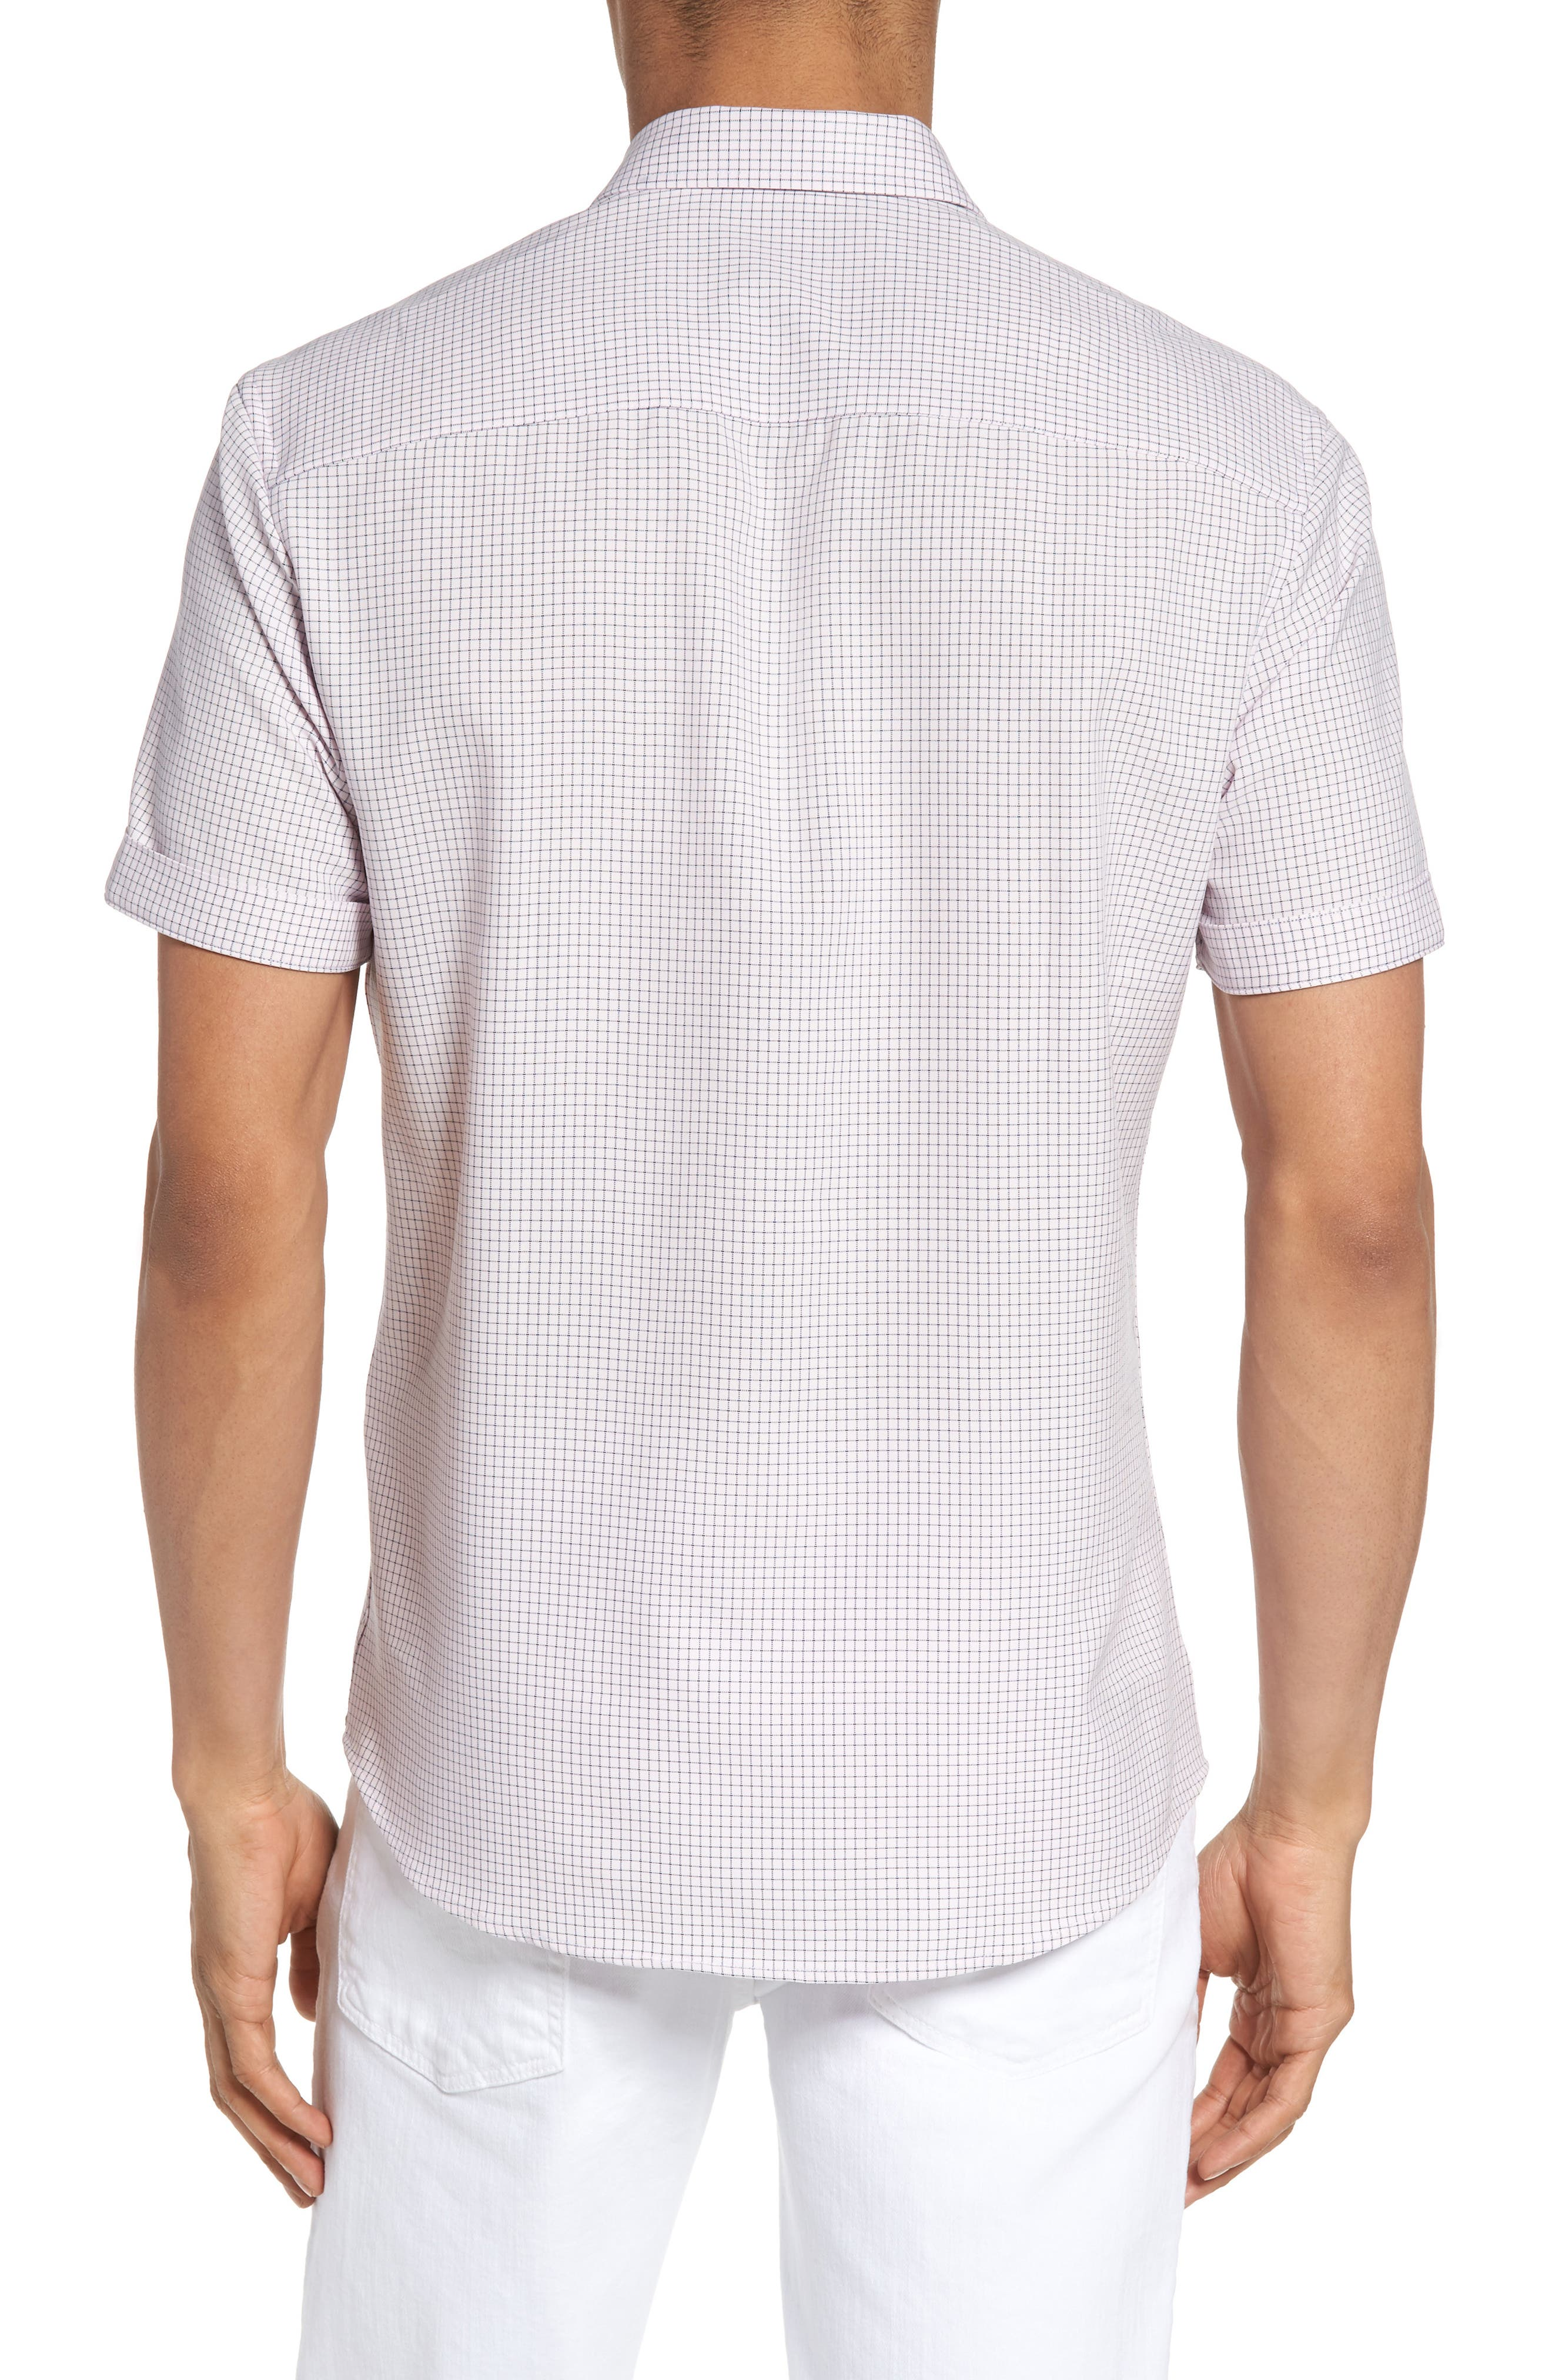 Alternate Image 2  - Vince Camuto Check Sport Shirt